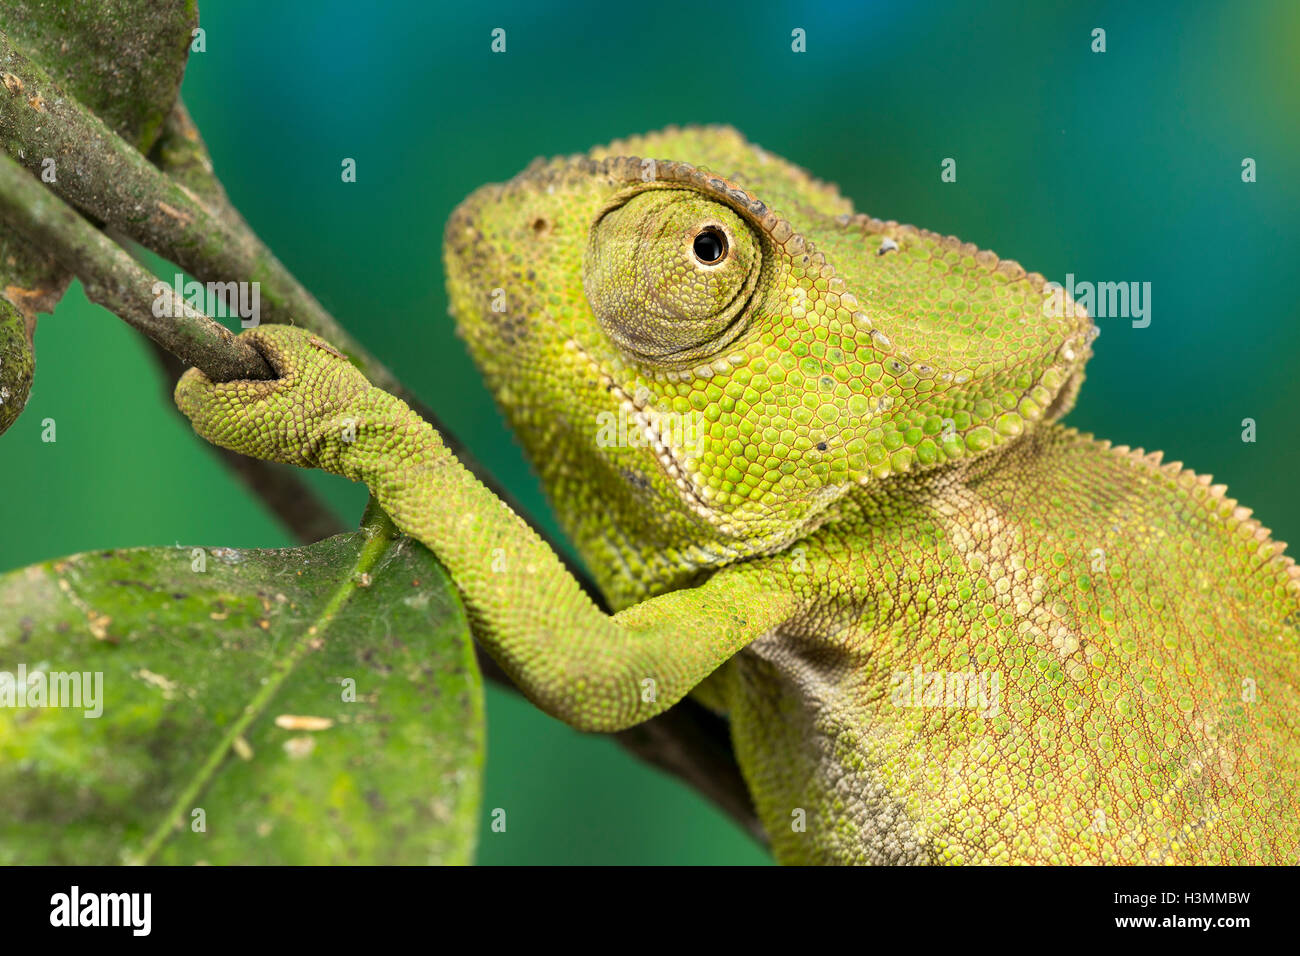 Close up of a green medium sized chameleon - Stock Image